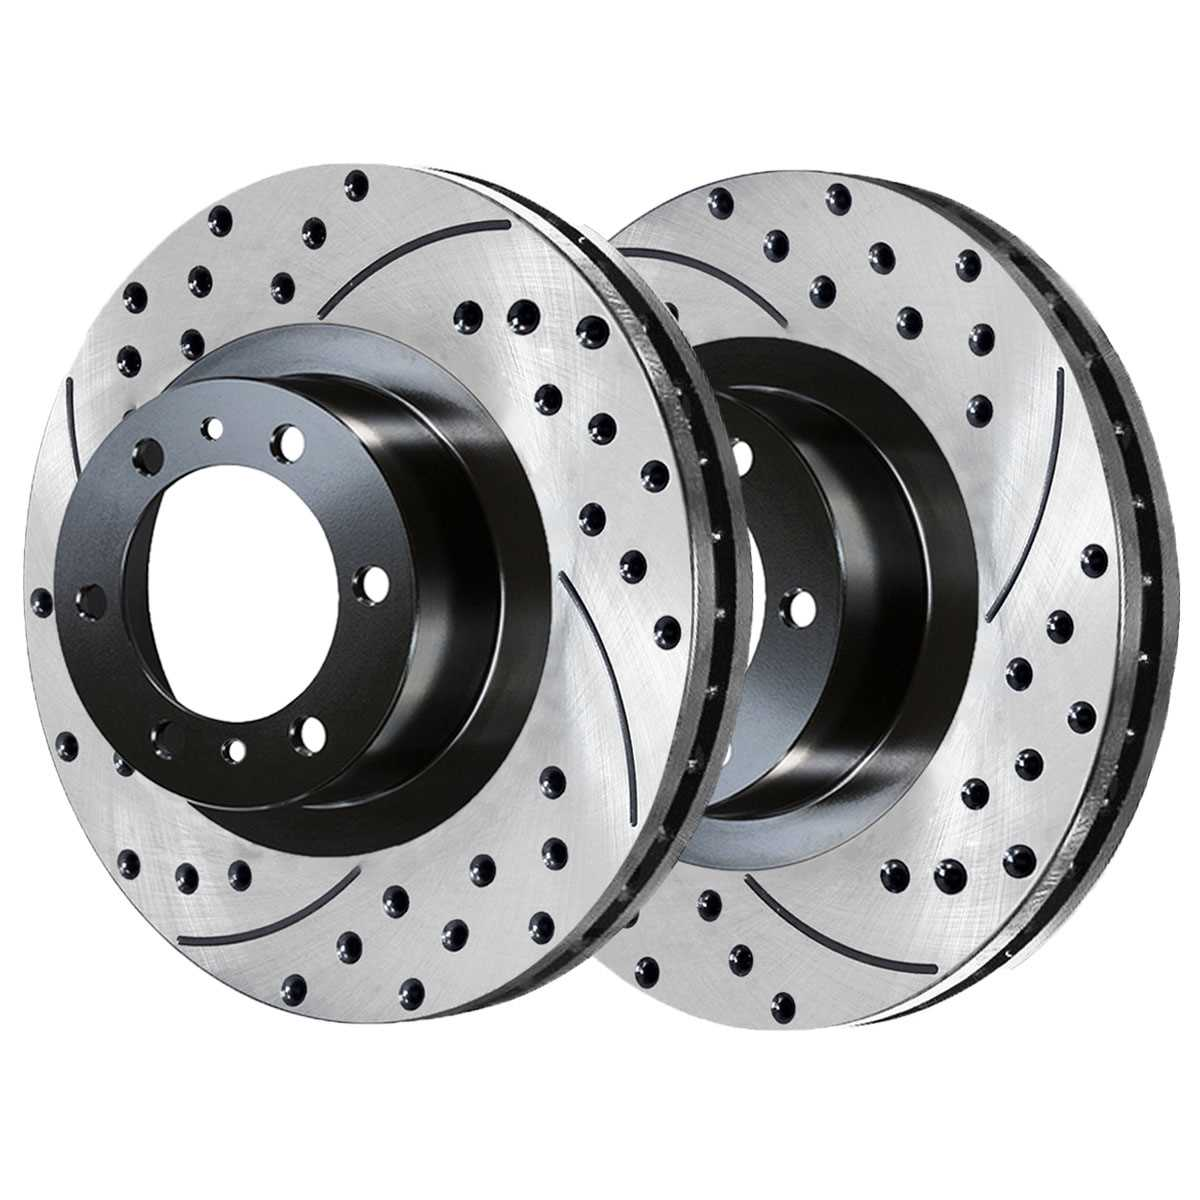 AutoShack PR41429LR Front Drilled and Slotted Brake Rotor Pair 2 Pieces Fits Driver and Passenger Side